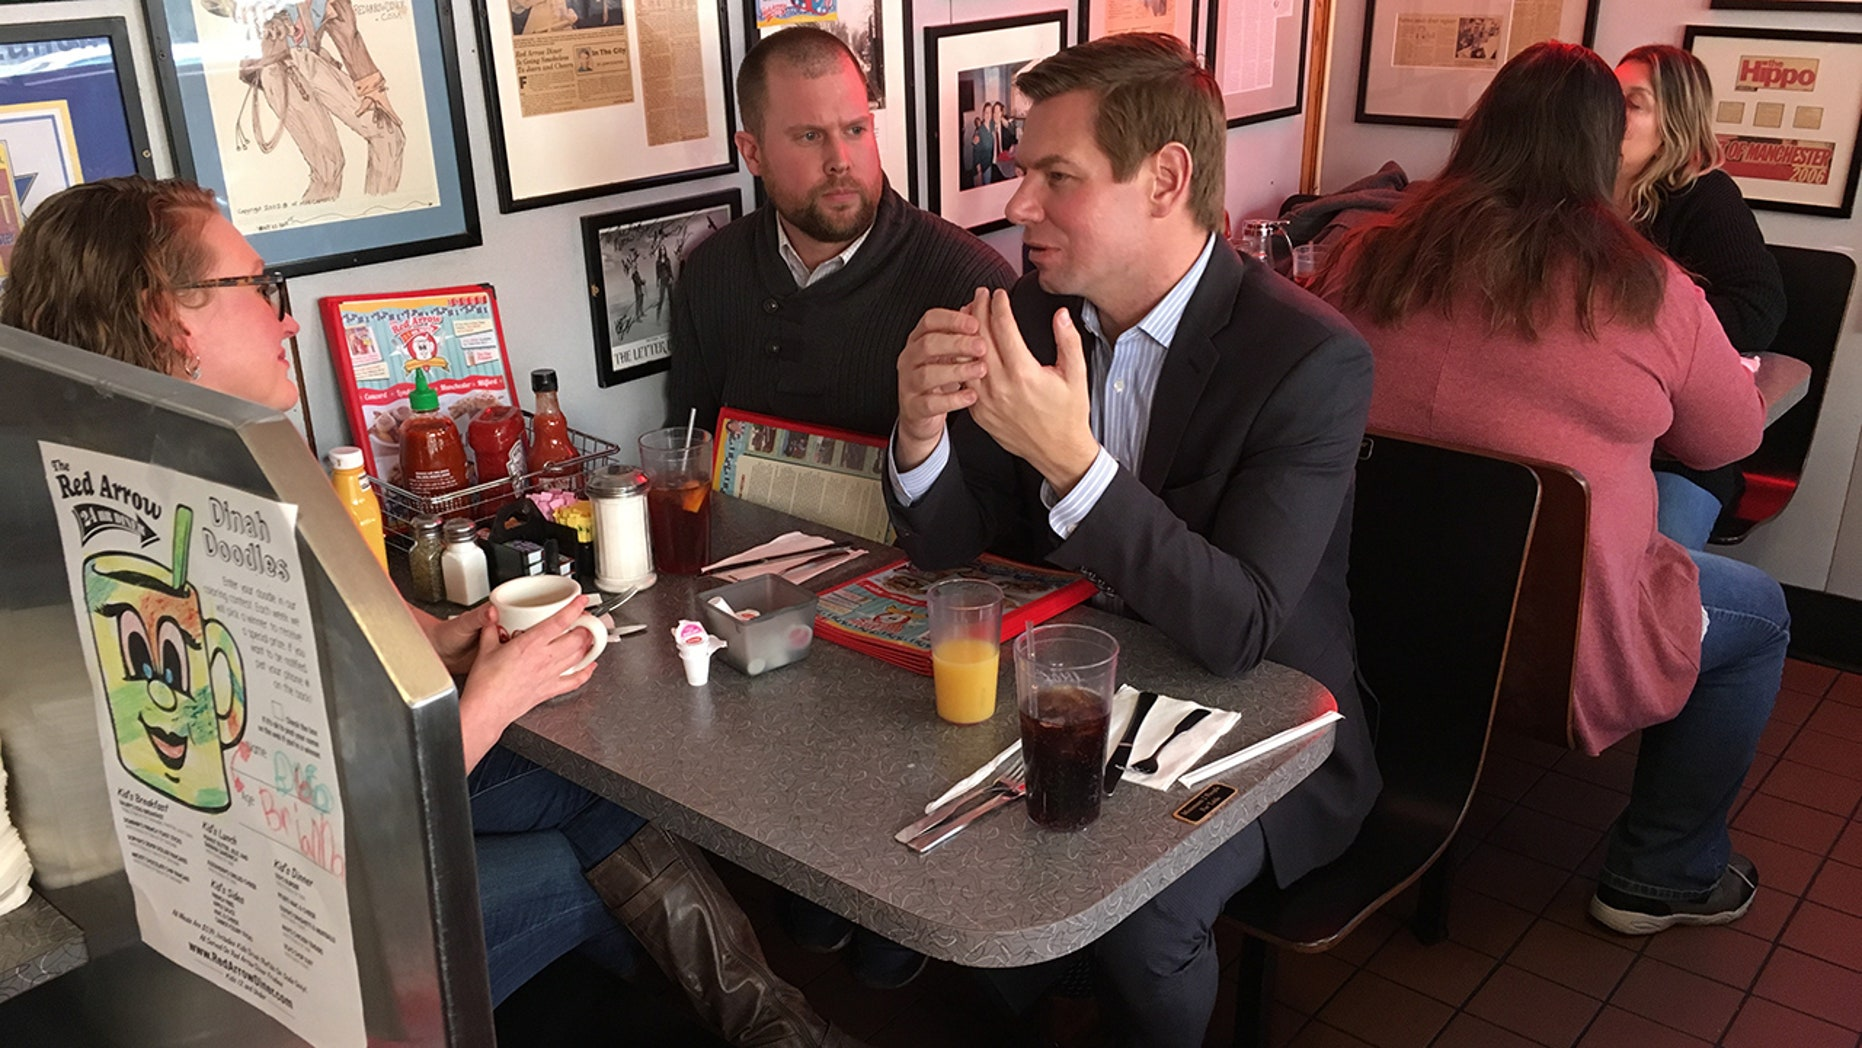 Congressman Eric Swalwell speaks with two New Hampshire Democratic state representatives at the Red Arrow Diner in Manchester.